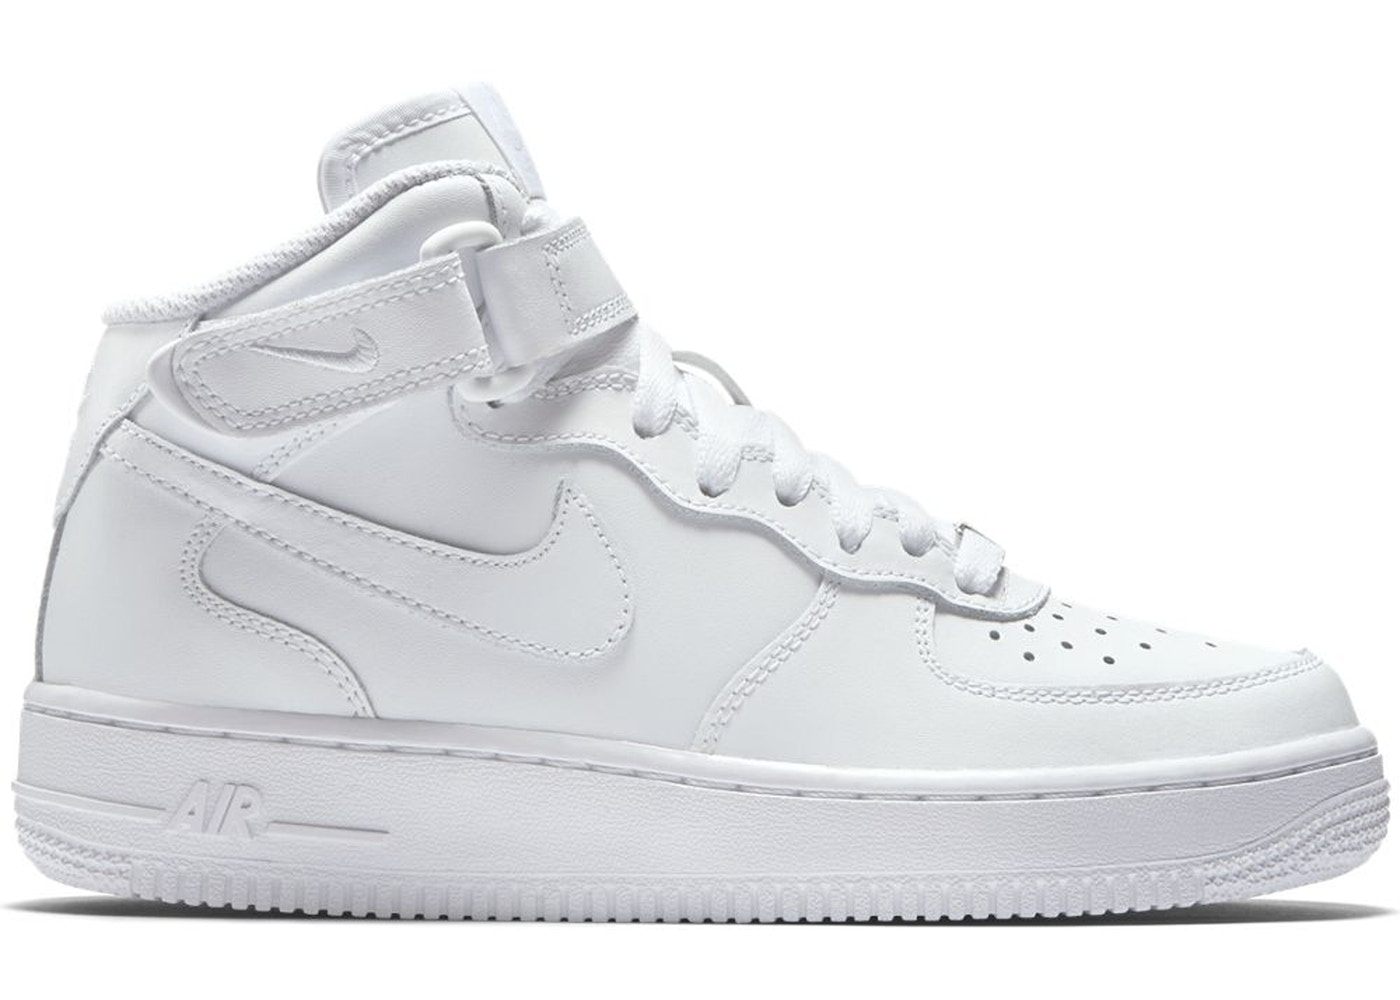 Nike Air Force 1 Mid White 2014 (GS)